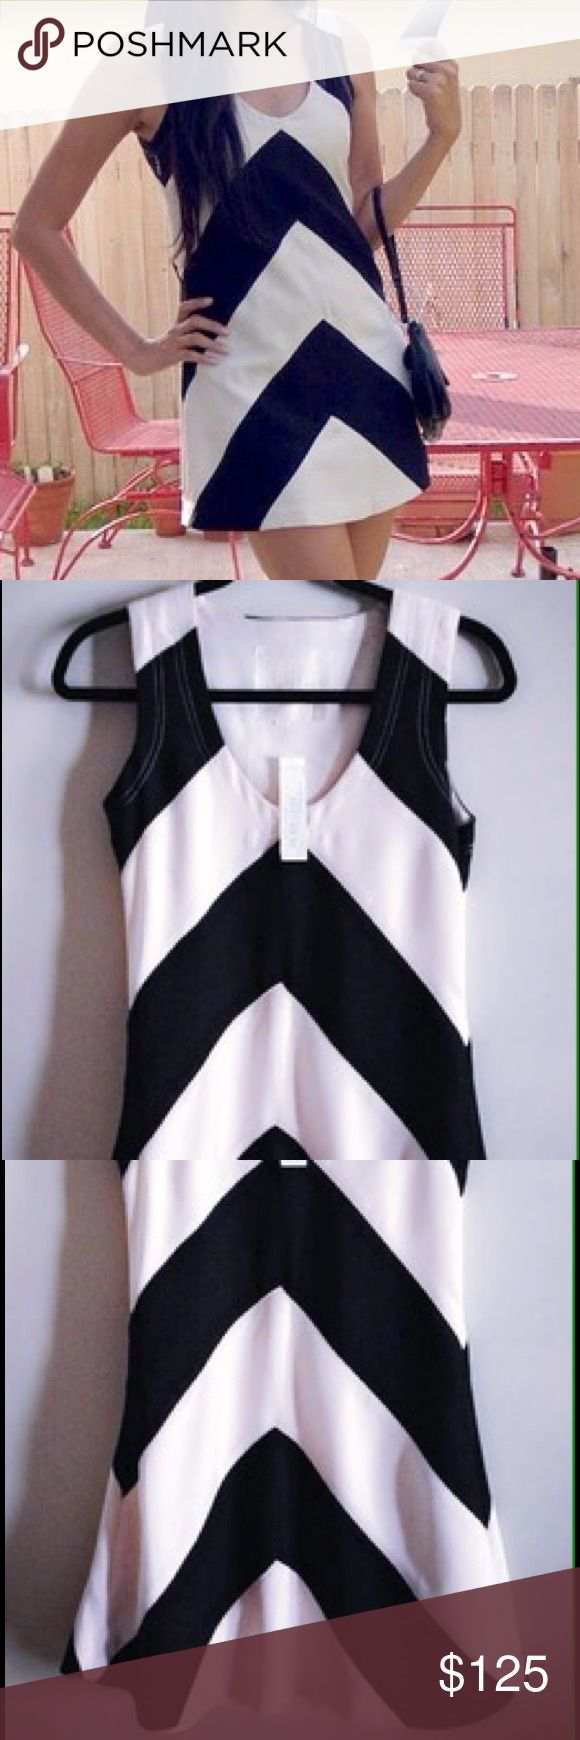 NWT KARTA Zig Zag Chevron Print Dress 6,8 Feminine, Slimming, Shift dress with a pale peach/nude detachable slip inside. A little hard to see beyond the A line on a hanger but it has a little swing to it. Fits a 6 or an 8 - tags read 8. A Shopbop purchase. KARTA Dresses Mini